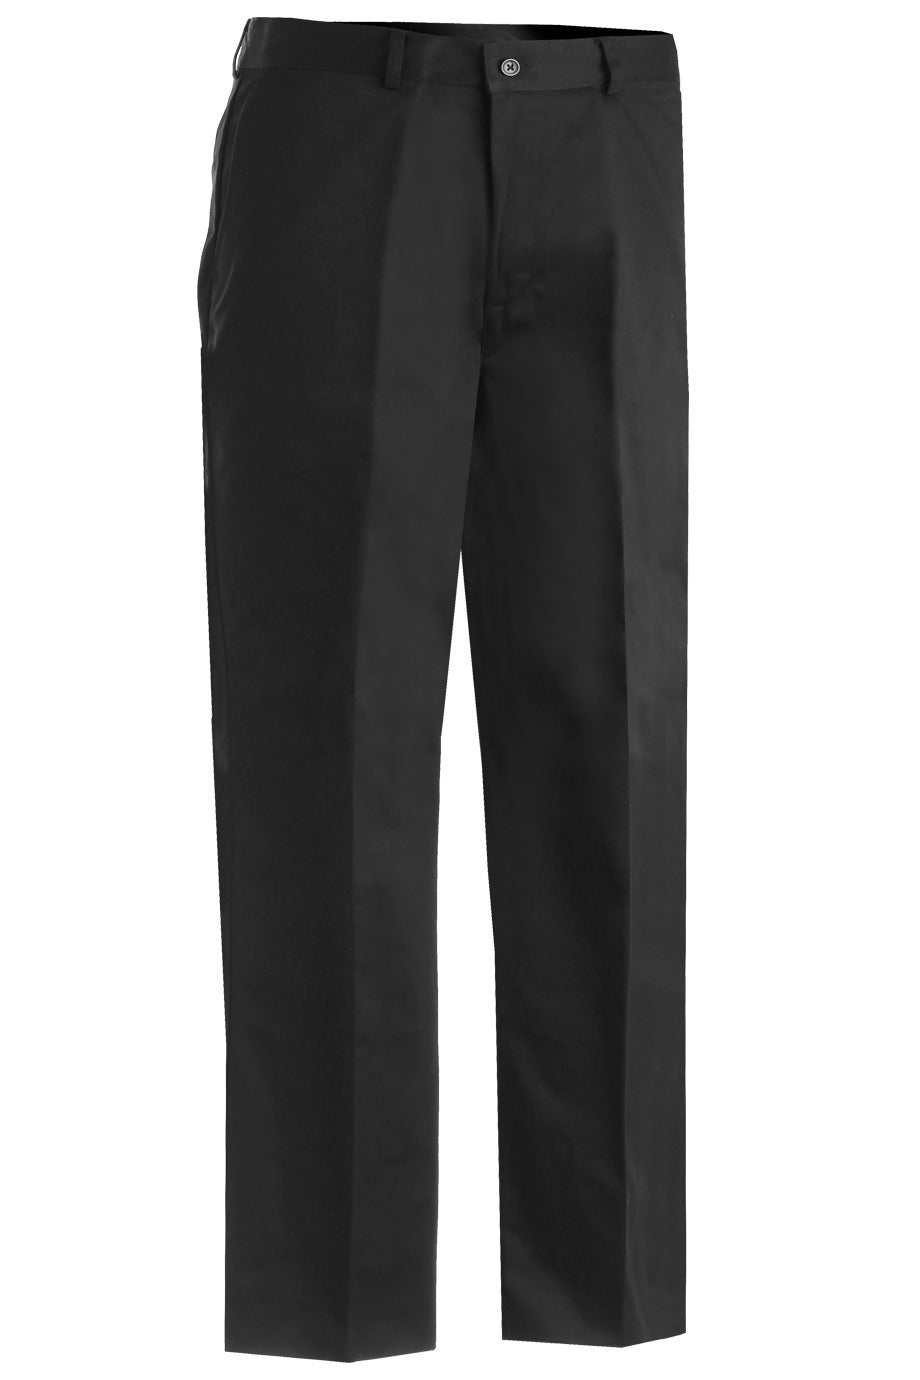 Men's Black Utility Flat Front Chino Pant